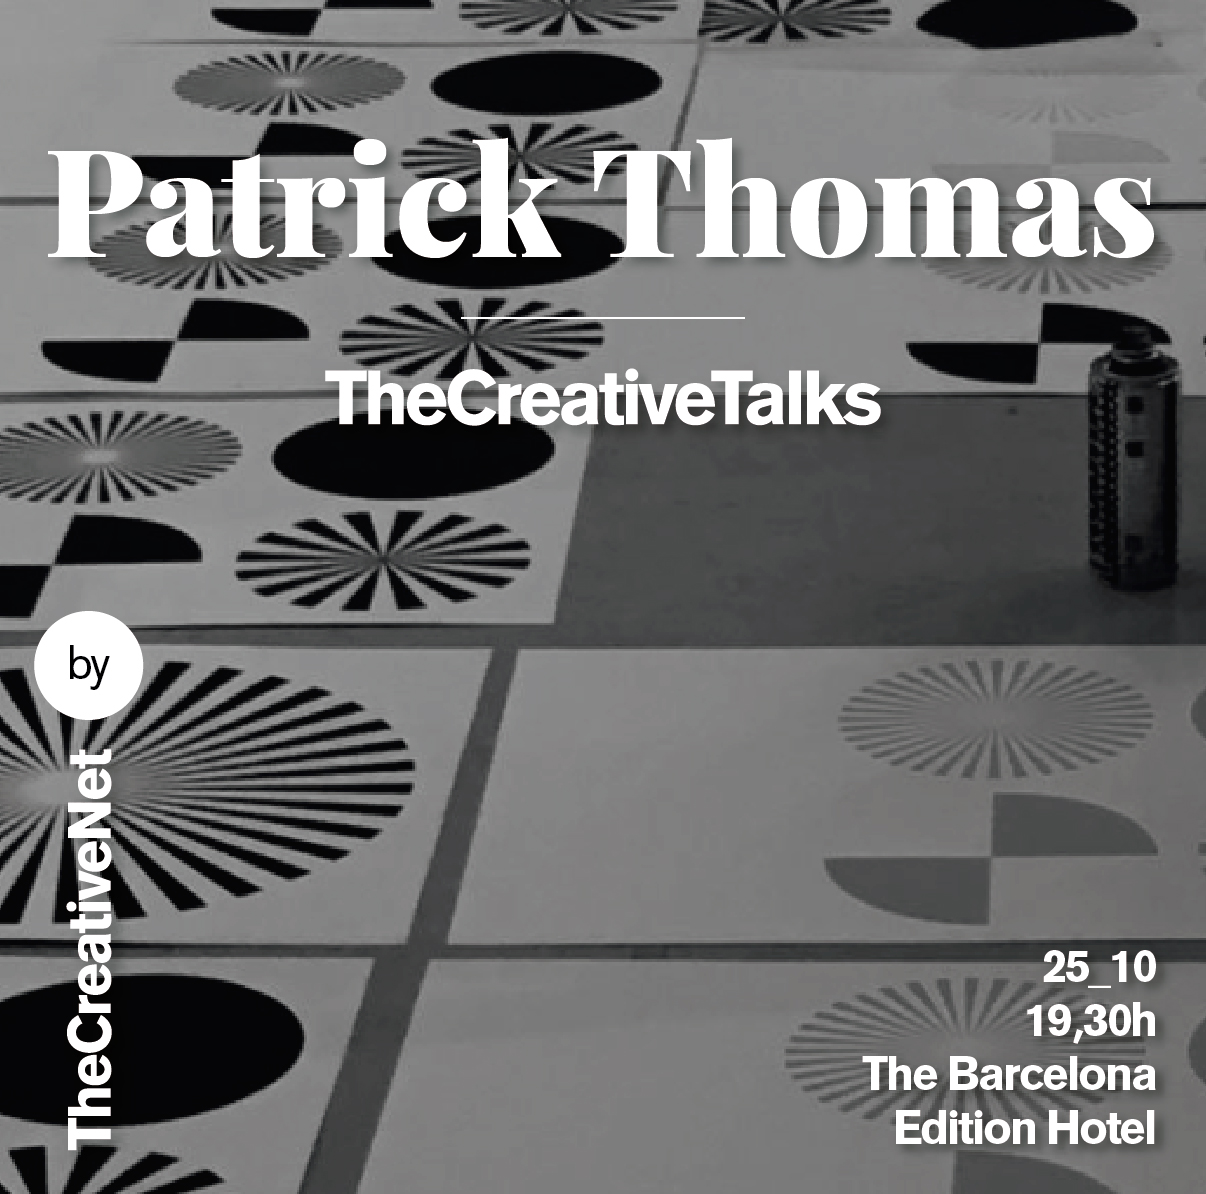 TheCreativeTalks-patrick-thomas-flyer-2018-10-18